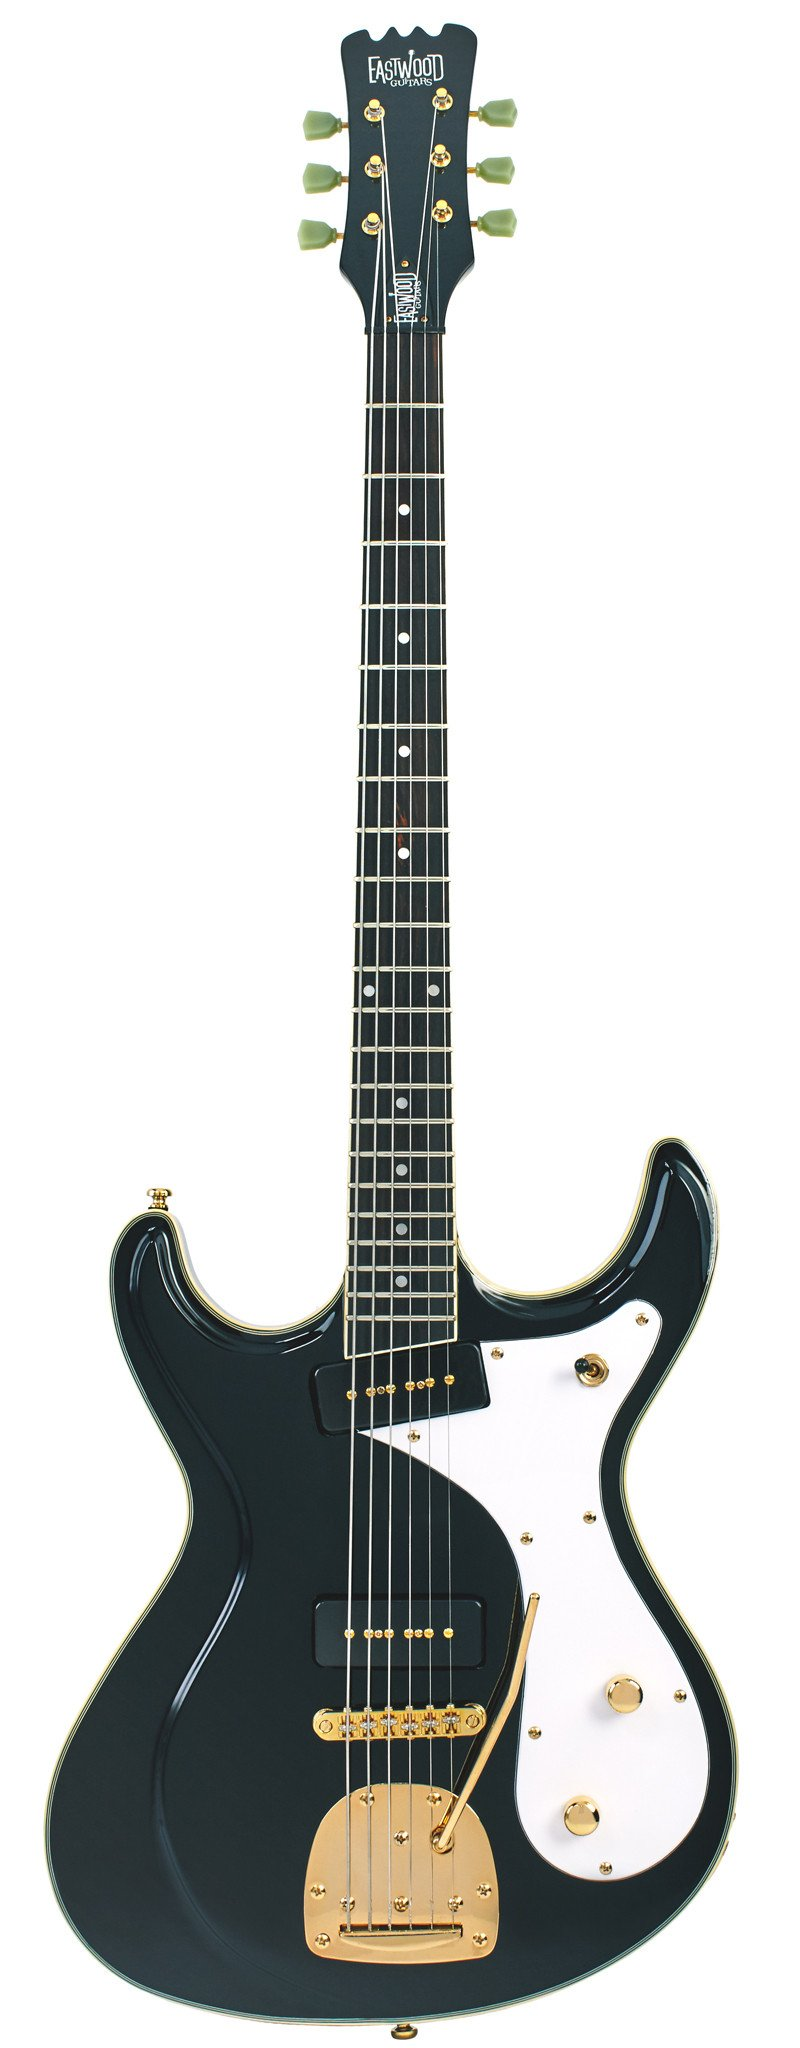 Eastwood Guitars Sidejack Baritone DLX Black and Gold Full Front